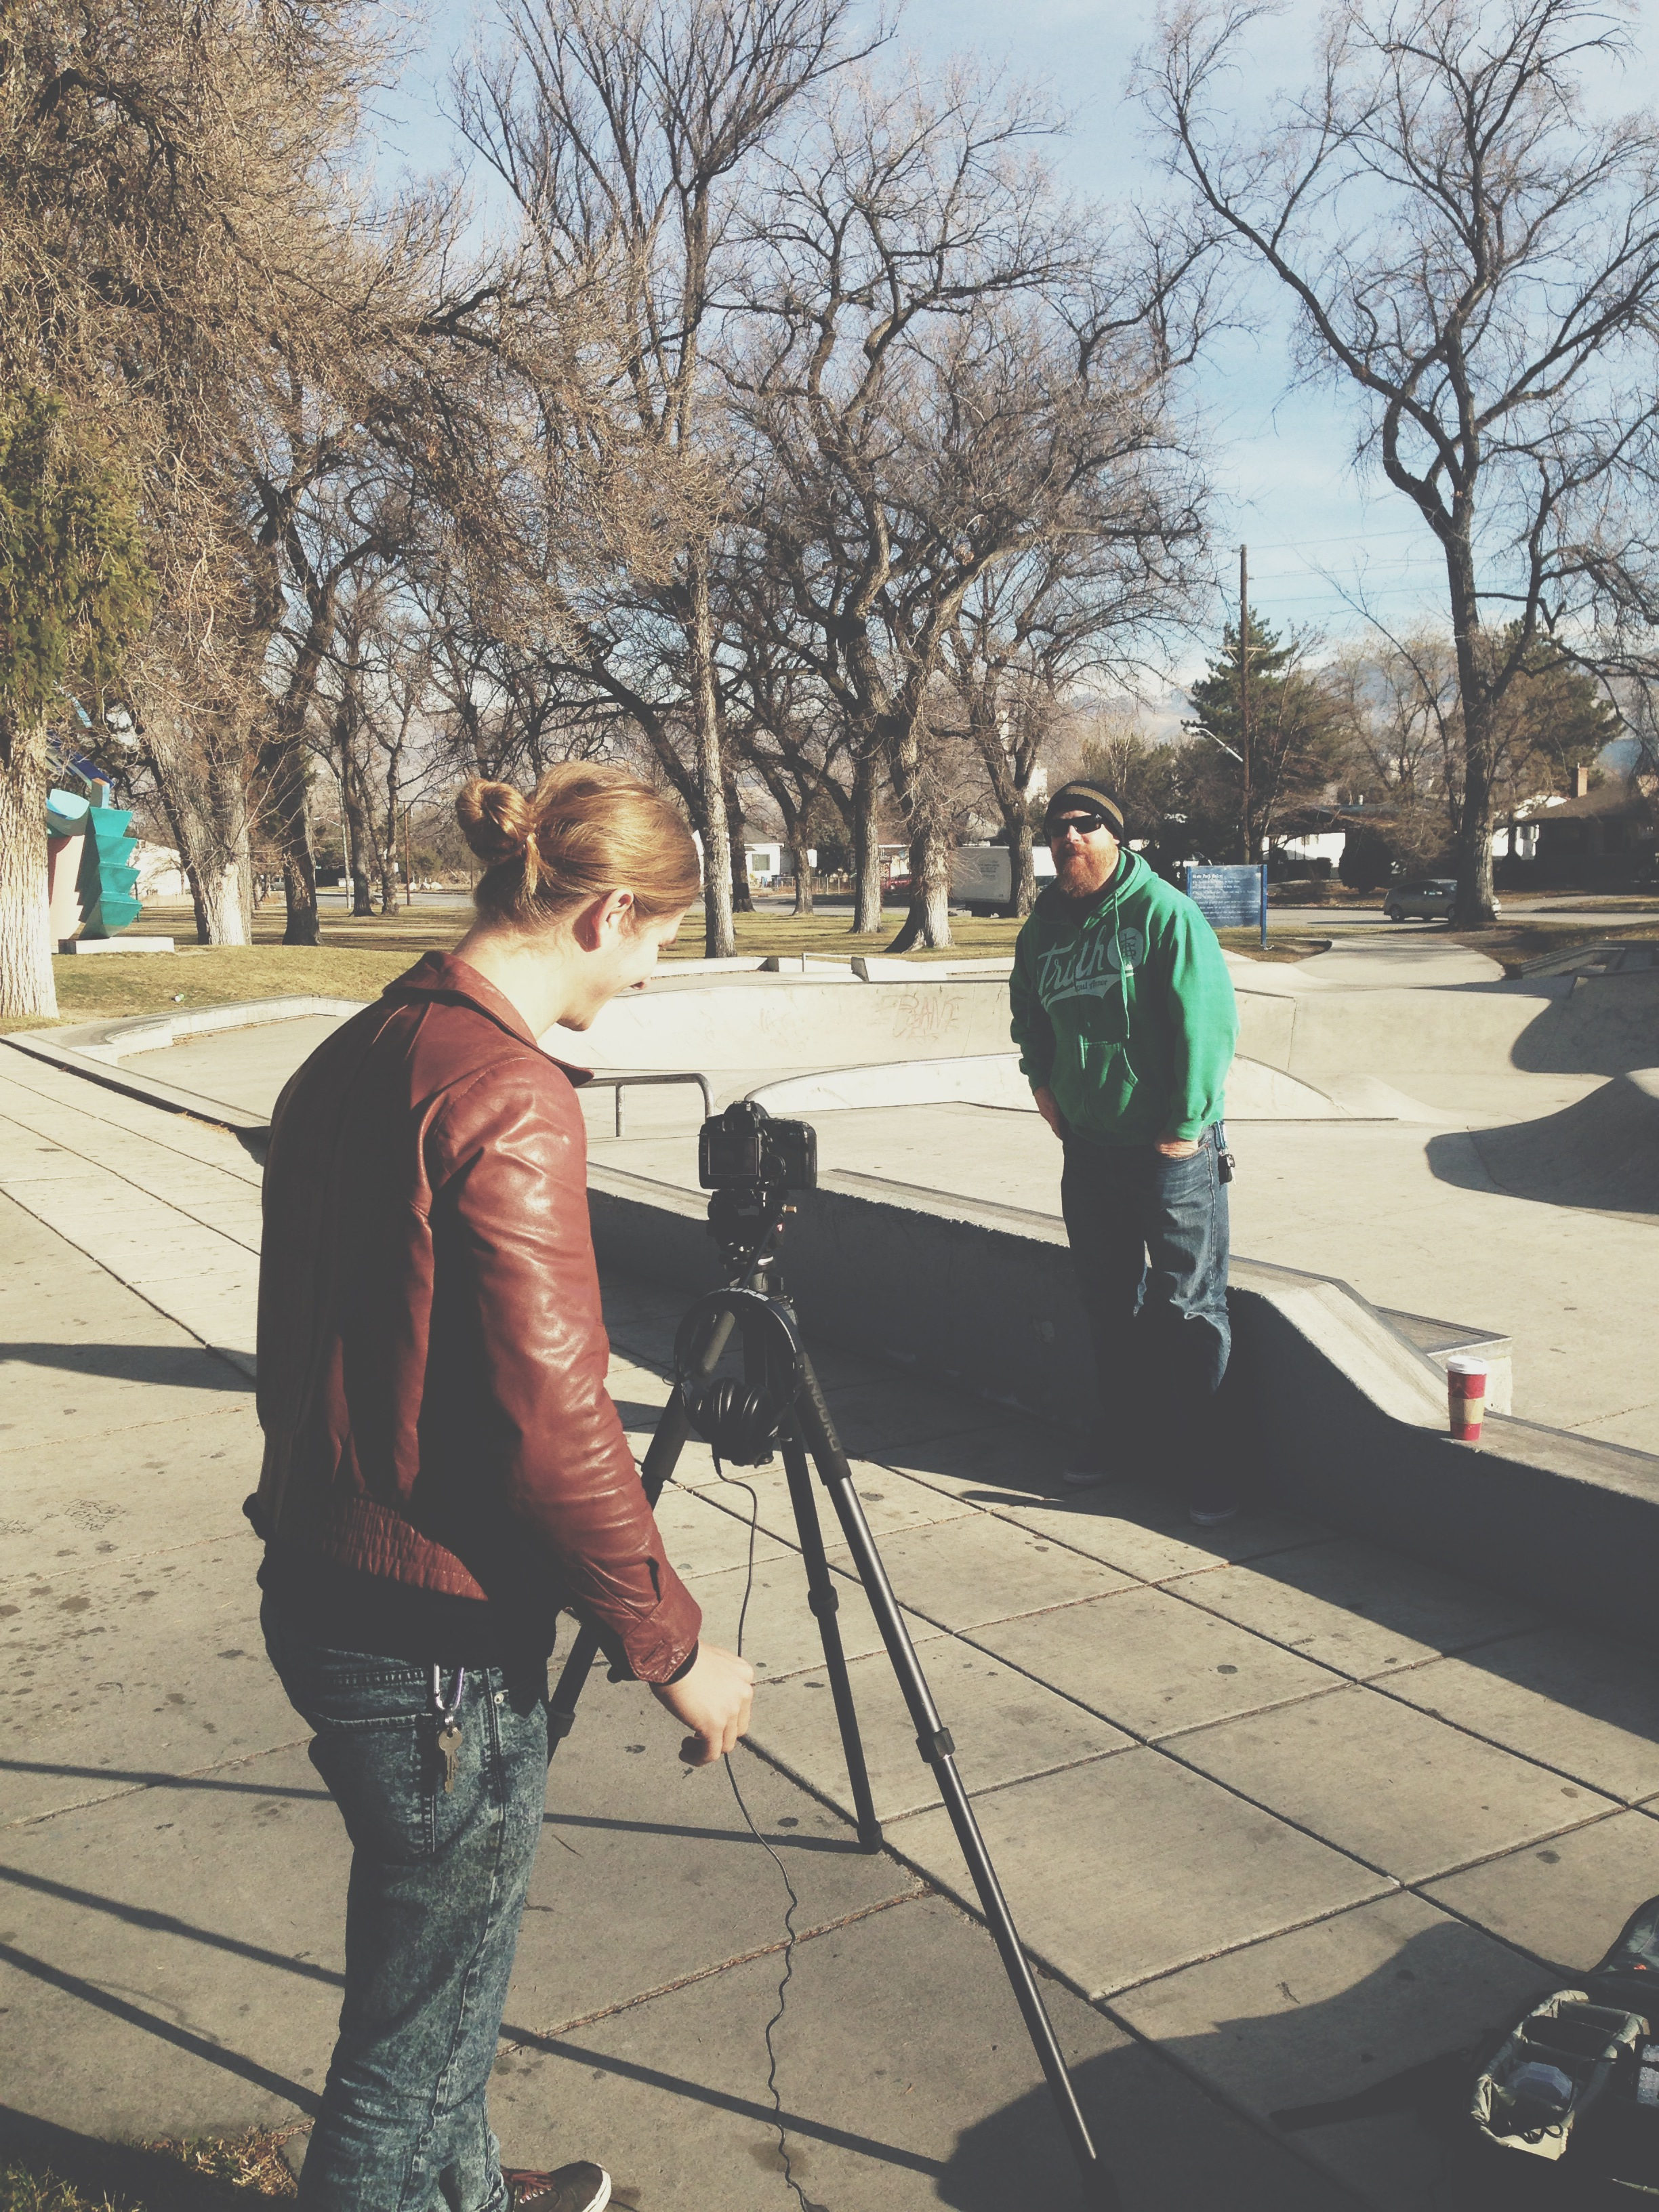 Setting up to interview Rob, one of the leaders at SkateChurch SLC.